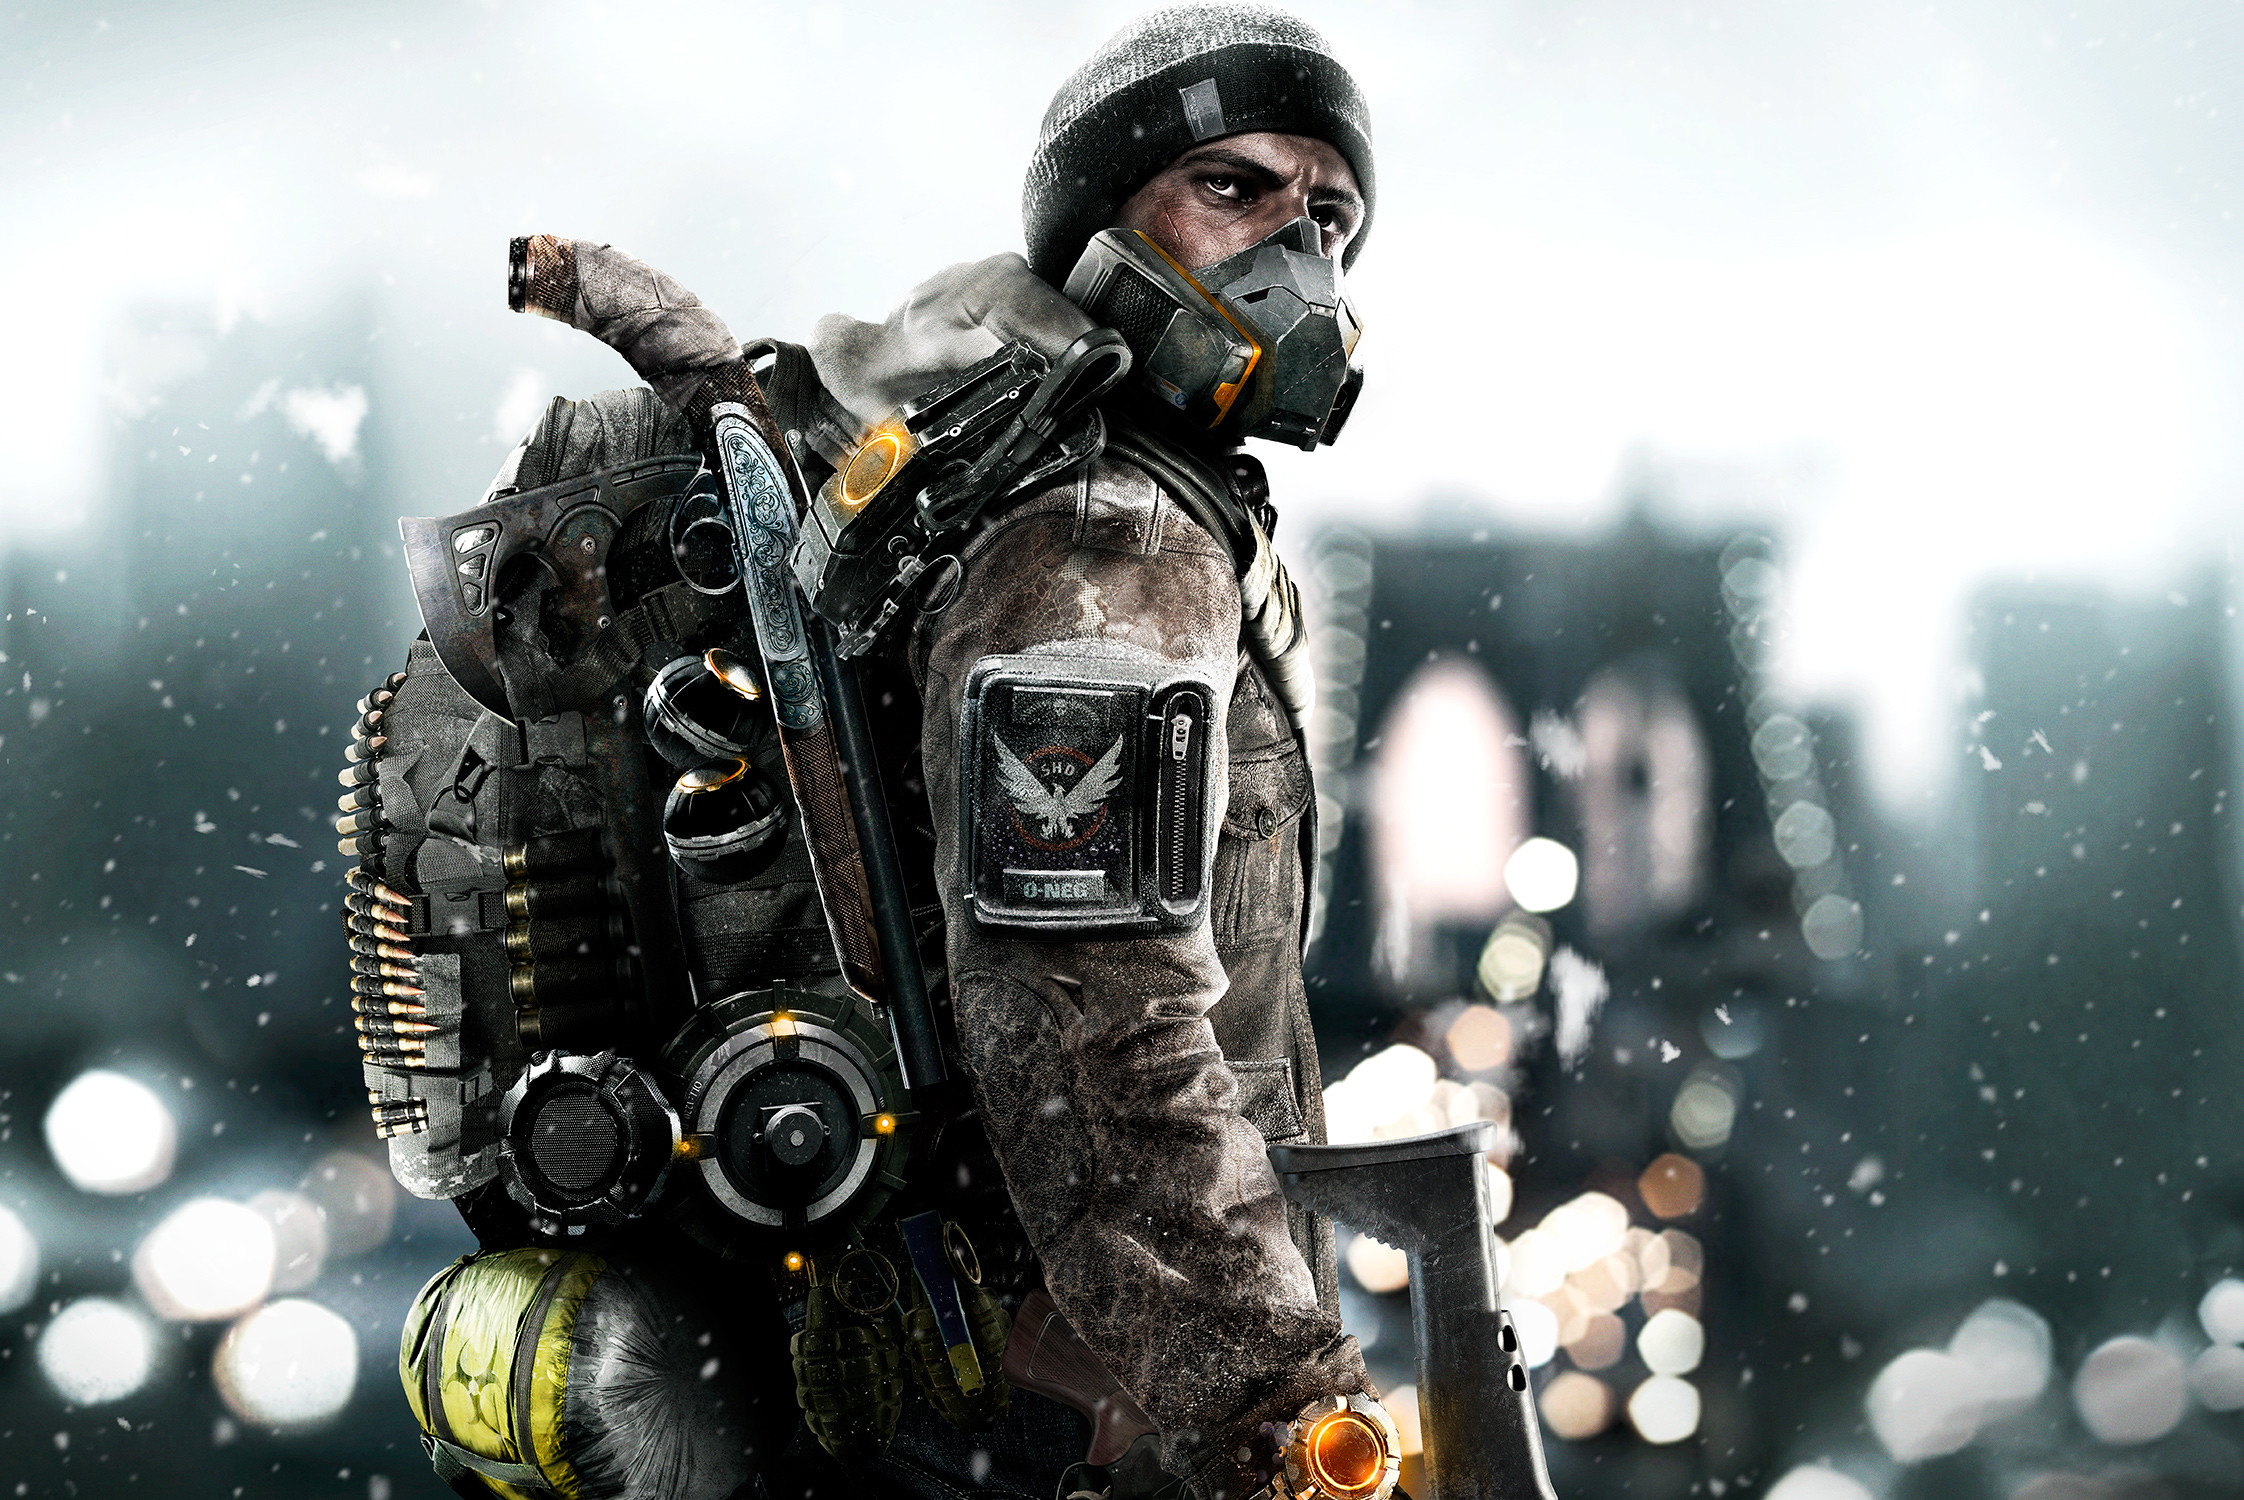 Video Game – Tom Clancy's The Division Wallpaper